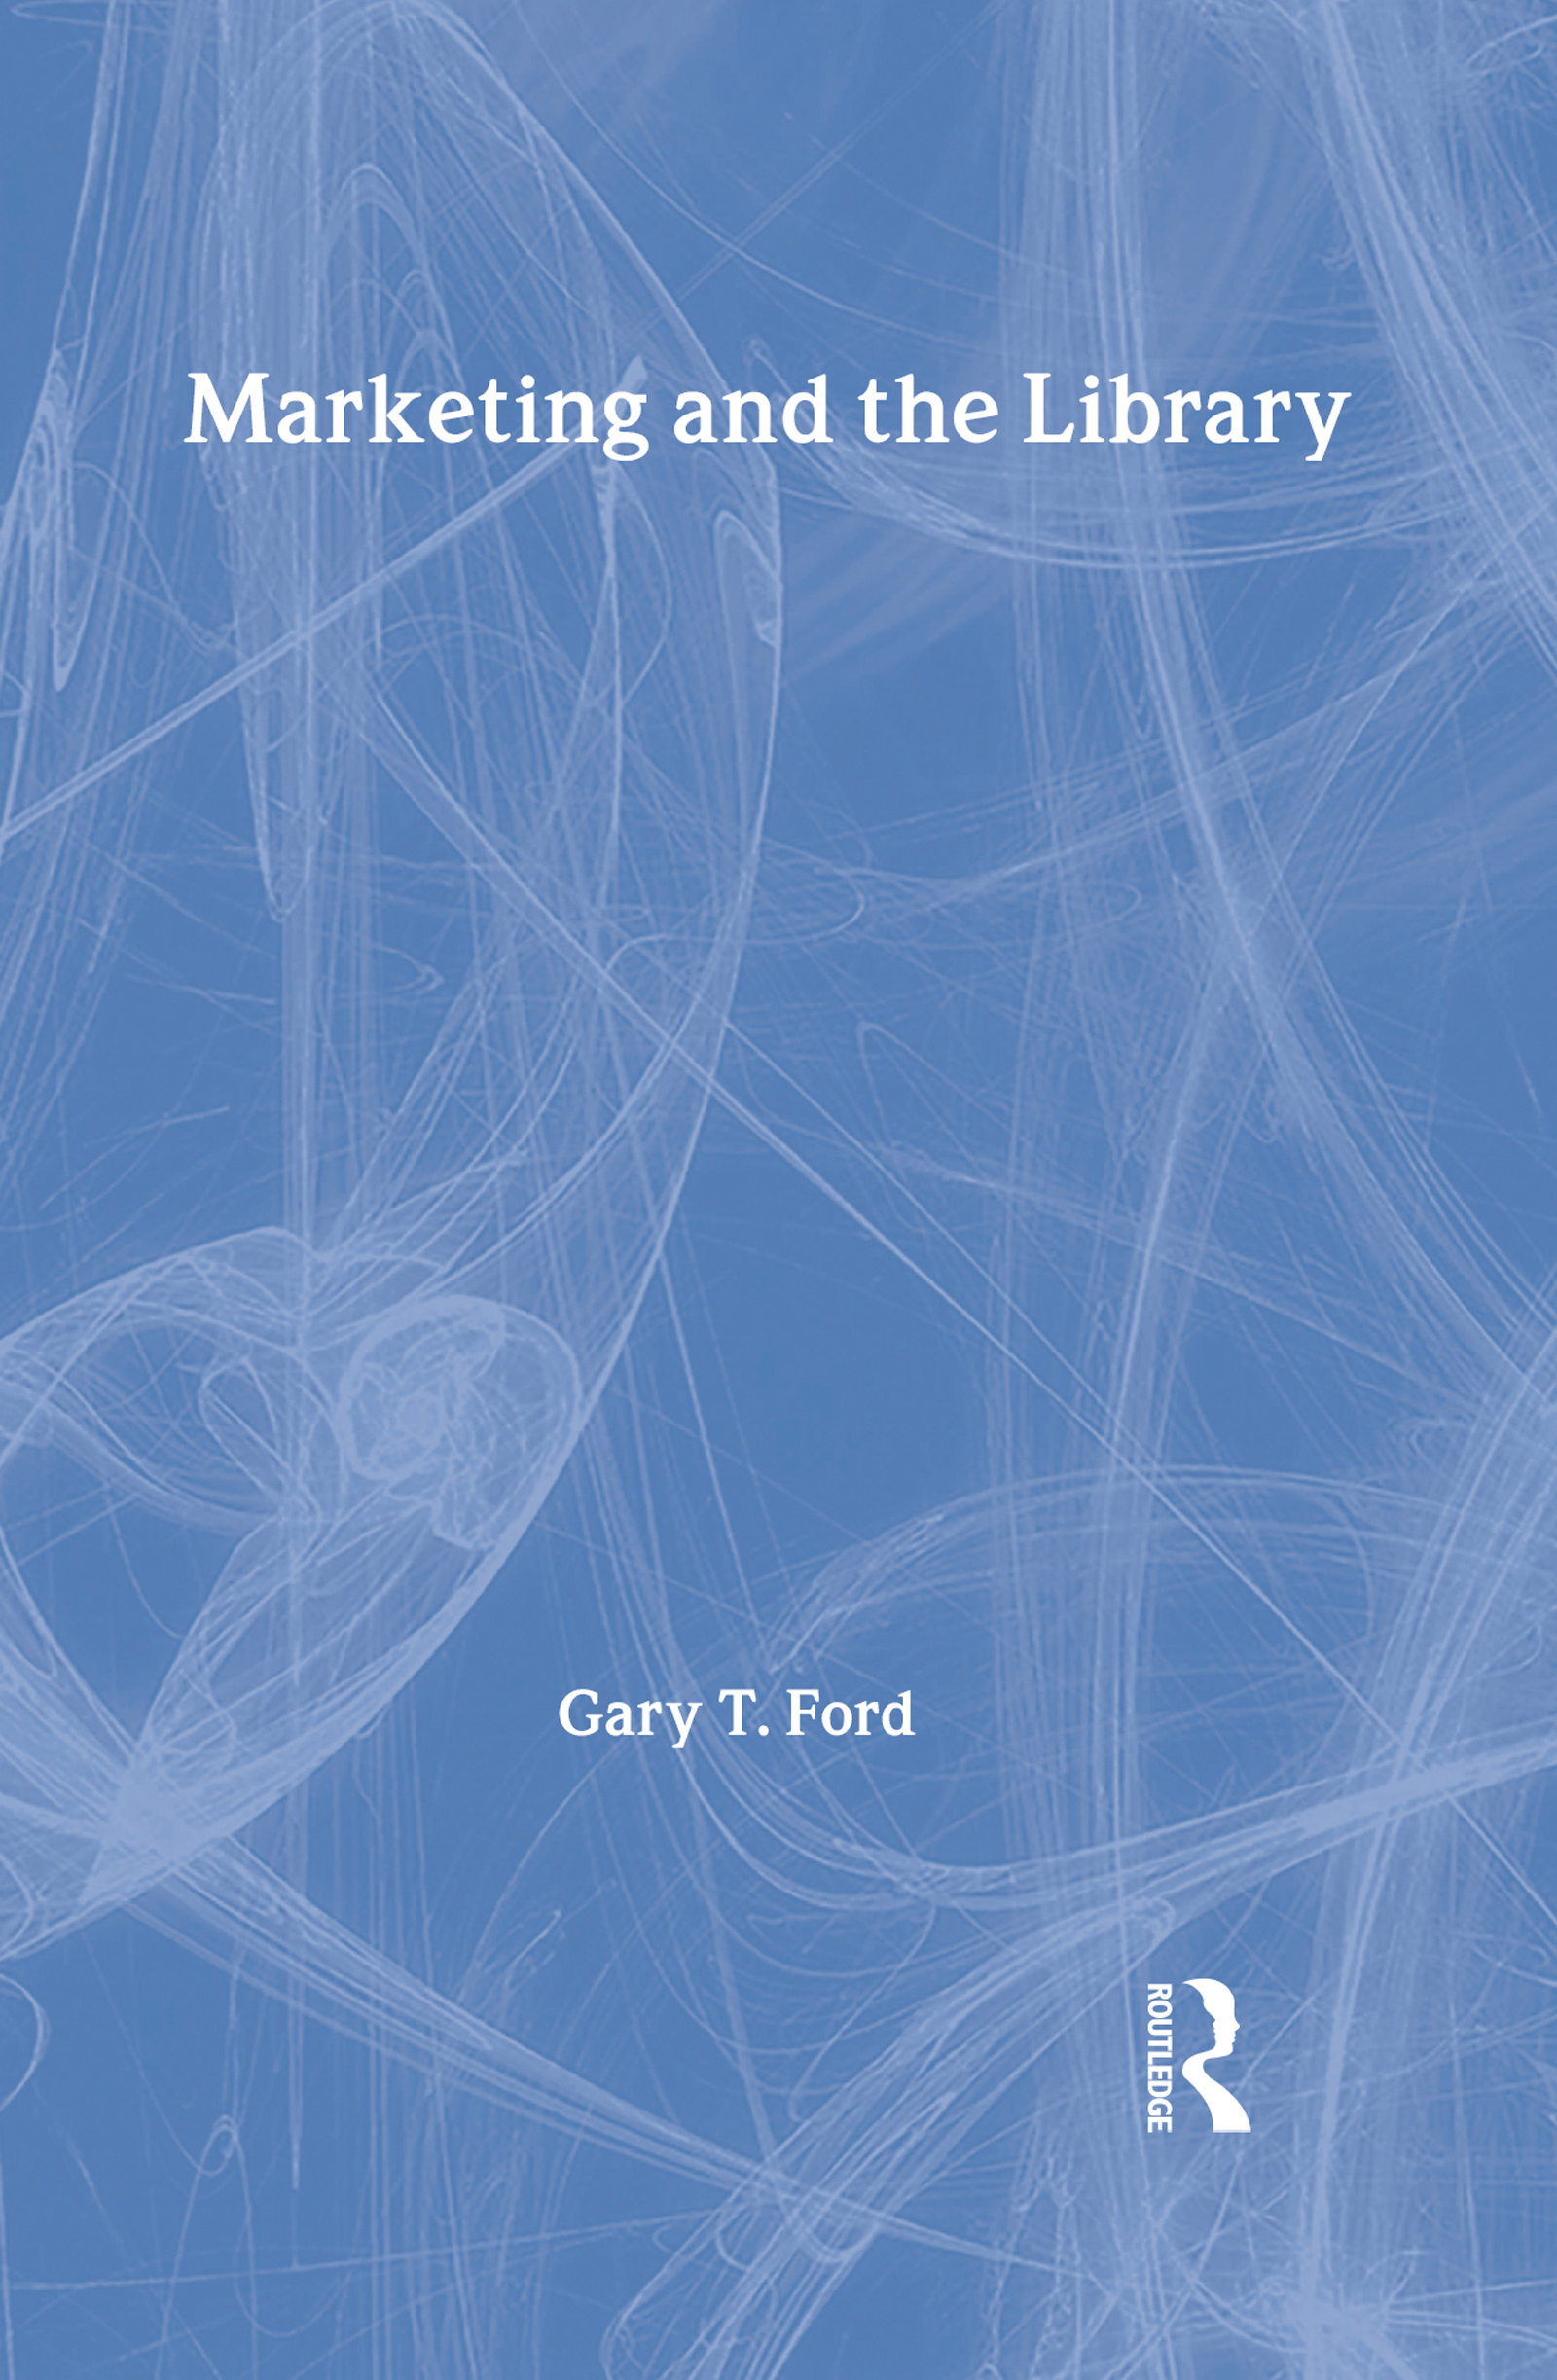 Distribution of the Library's Product: The Need for Innovation